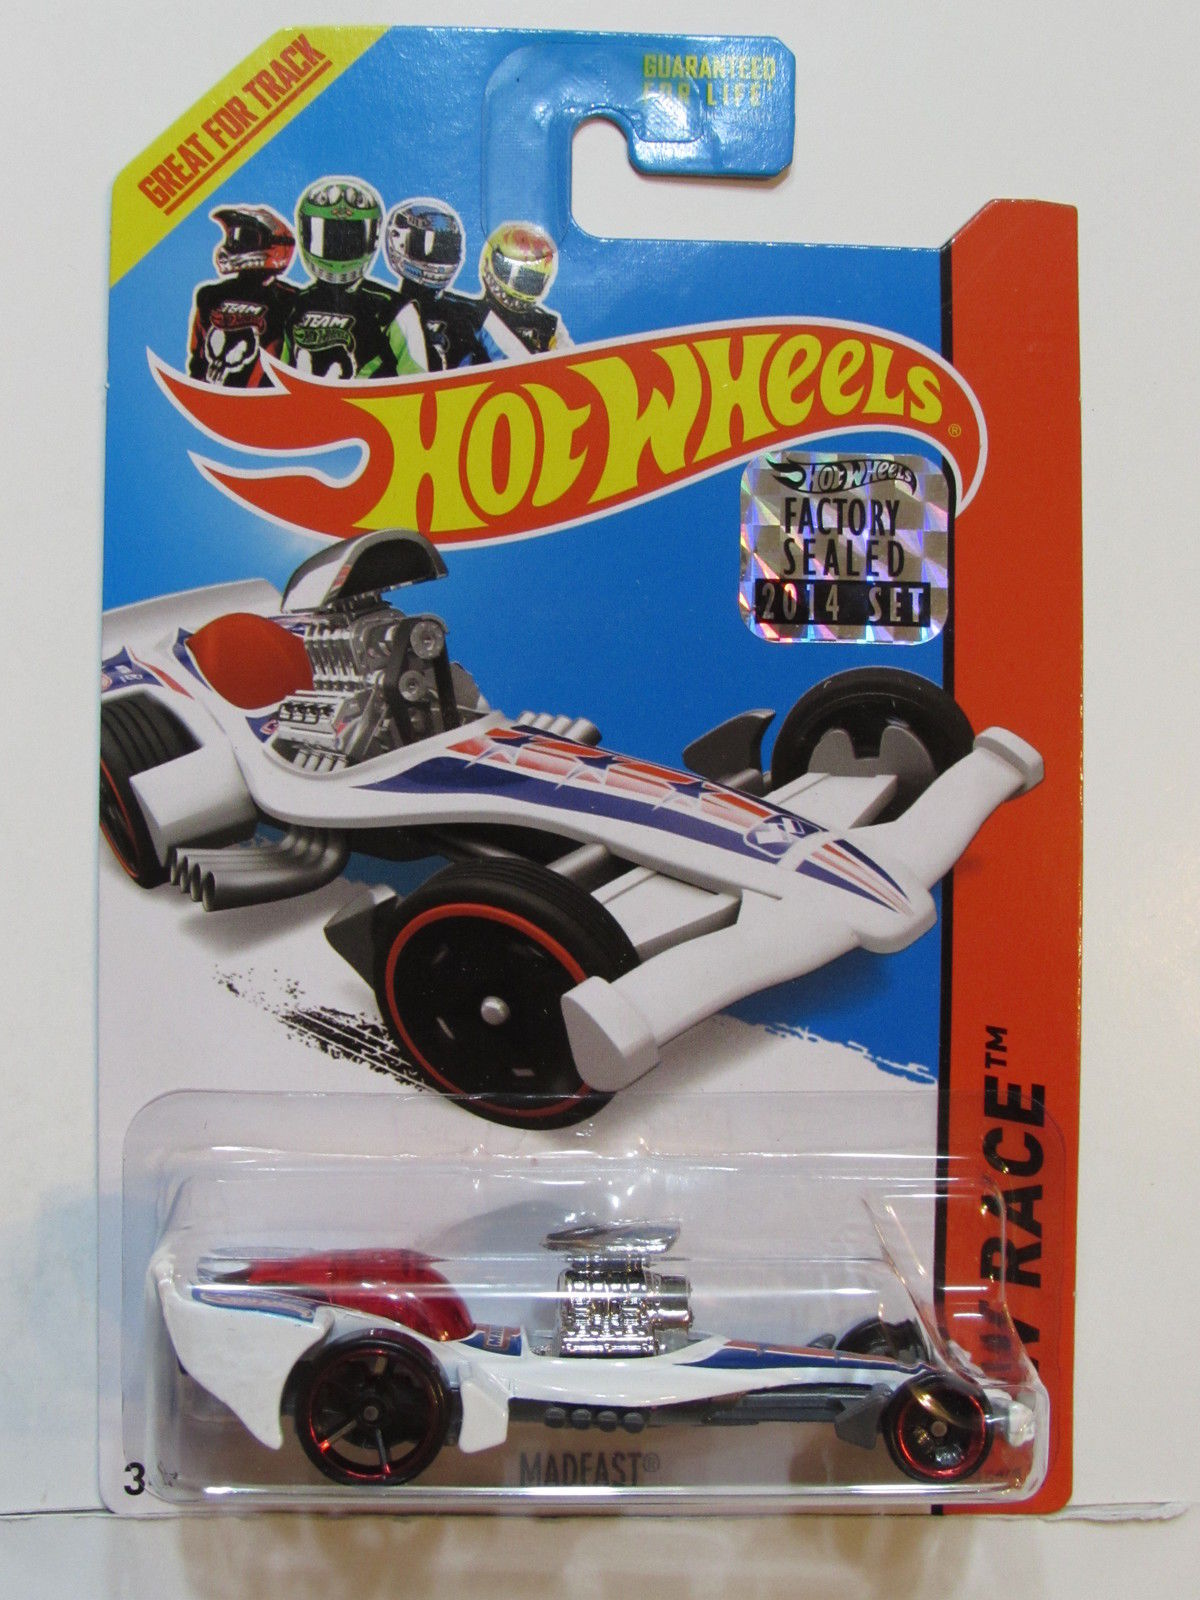 HOT WHEELS 2014 HW RACE MADFAST FACTORY SEALED WHITE